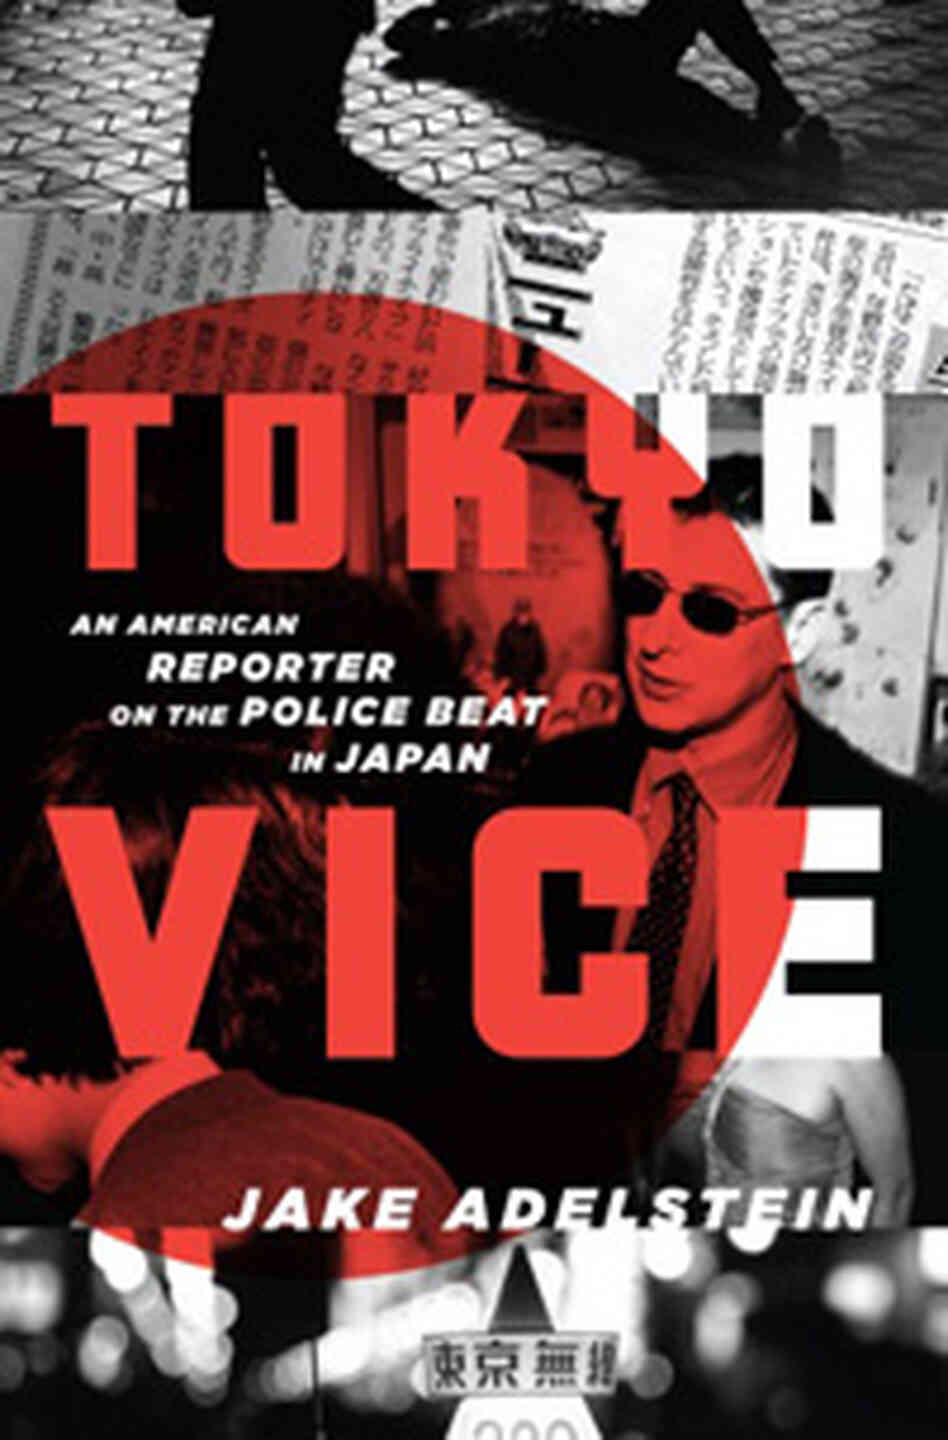 'Tokyo Vice: An American Reporter on the Police Beat in Japan' by Jake Adelstein